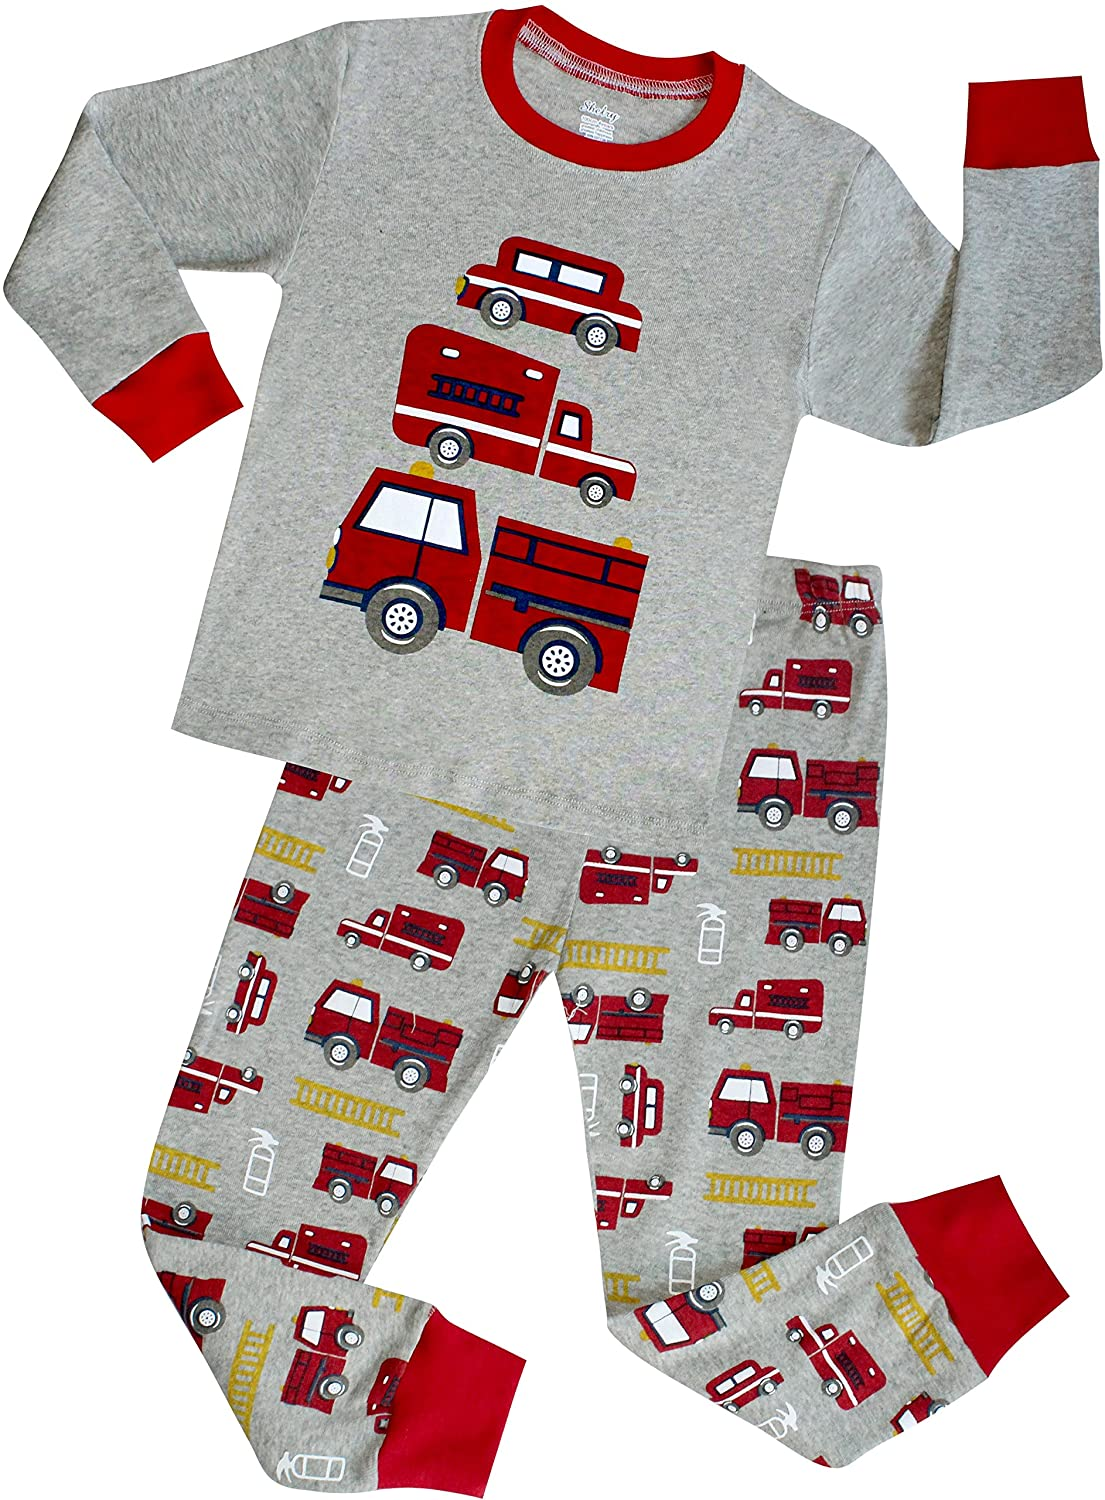 shelry Truck Boys Pajamas Toddler Sleepwear Clothes T Shirt Pants Set Kids Size 2Y 7Y